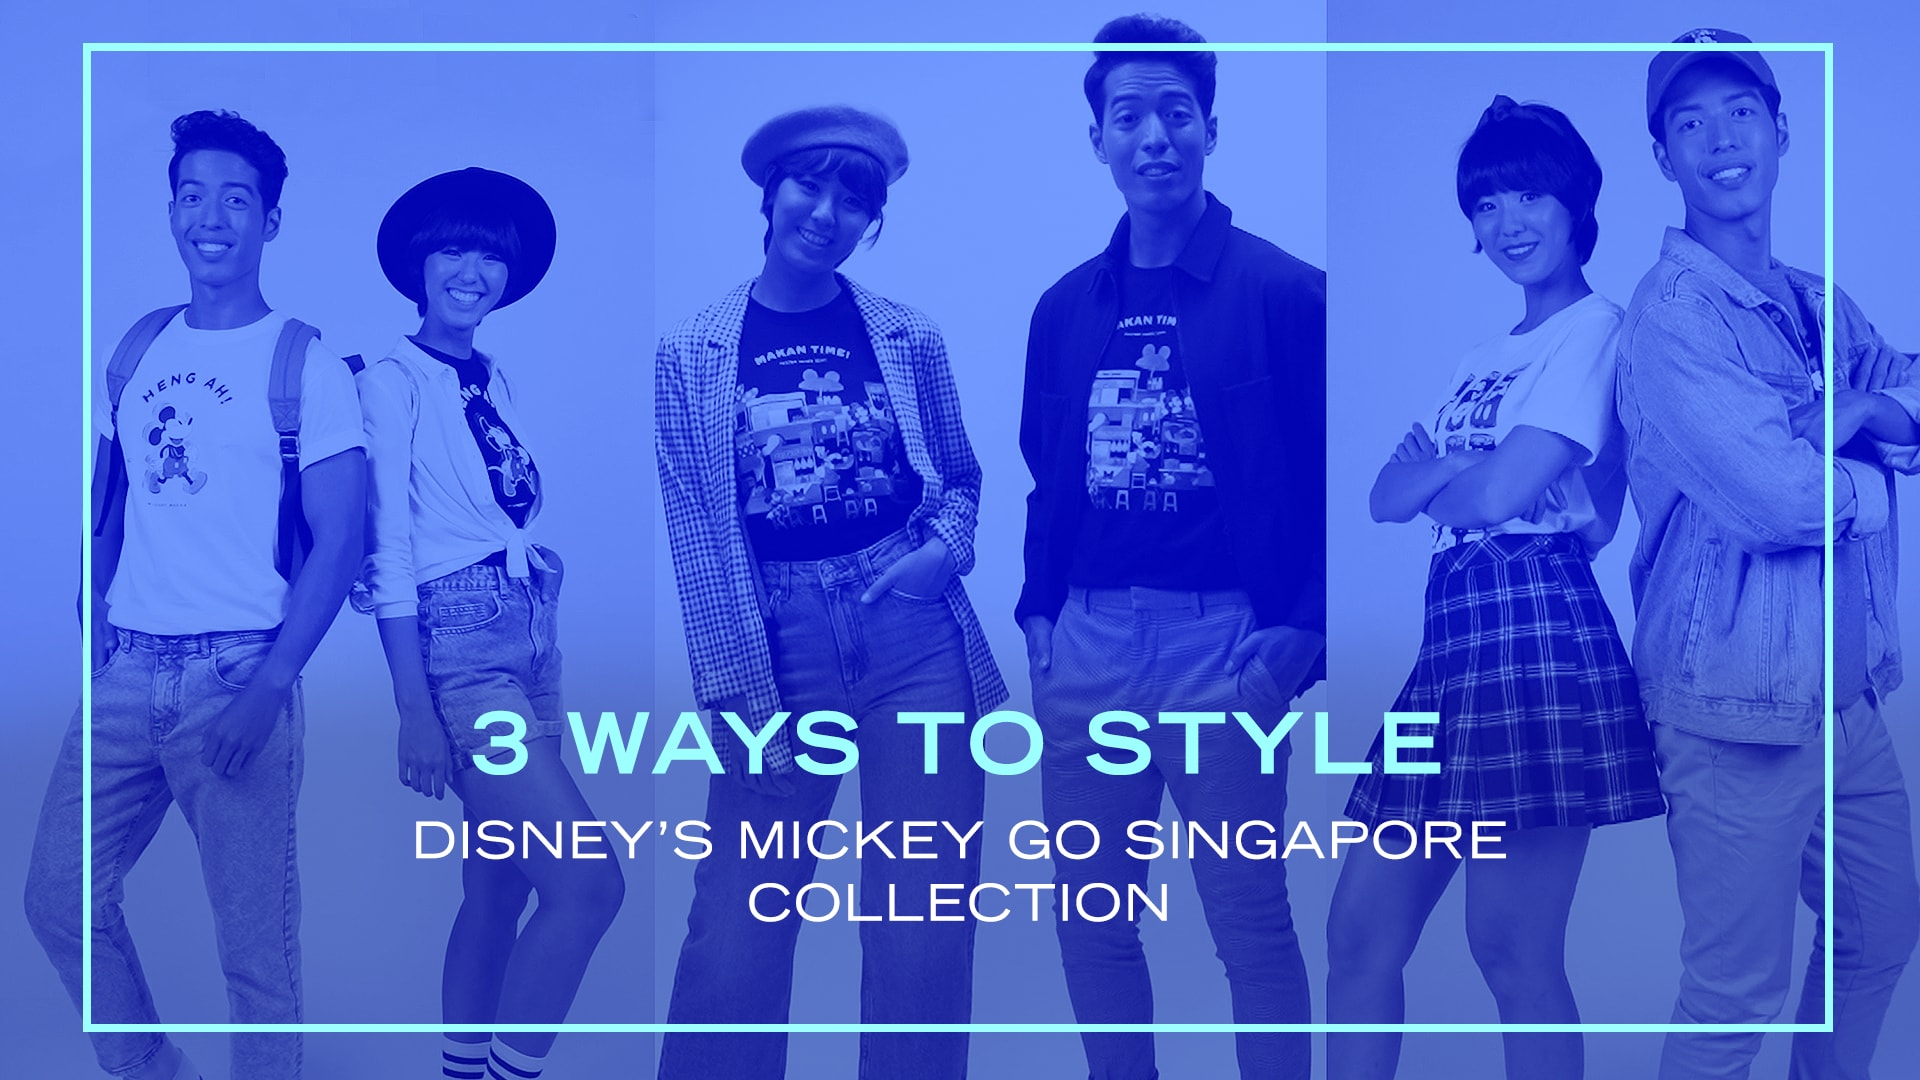 How To Style Disney's Mickey Go Singapore Collection